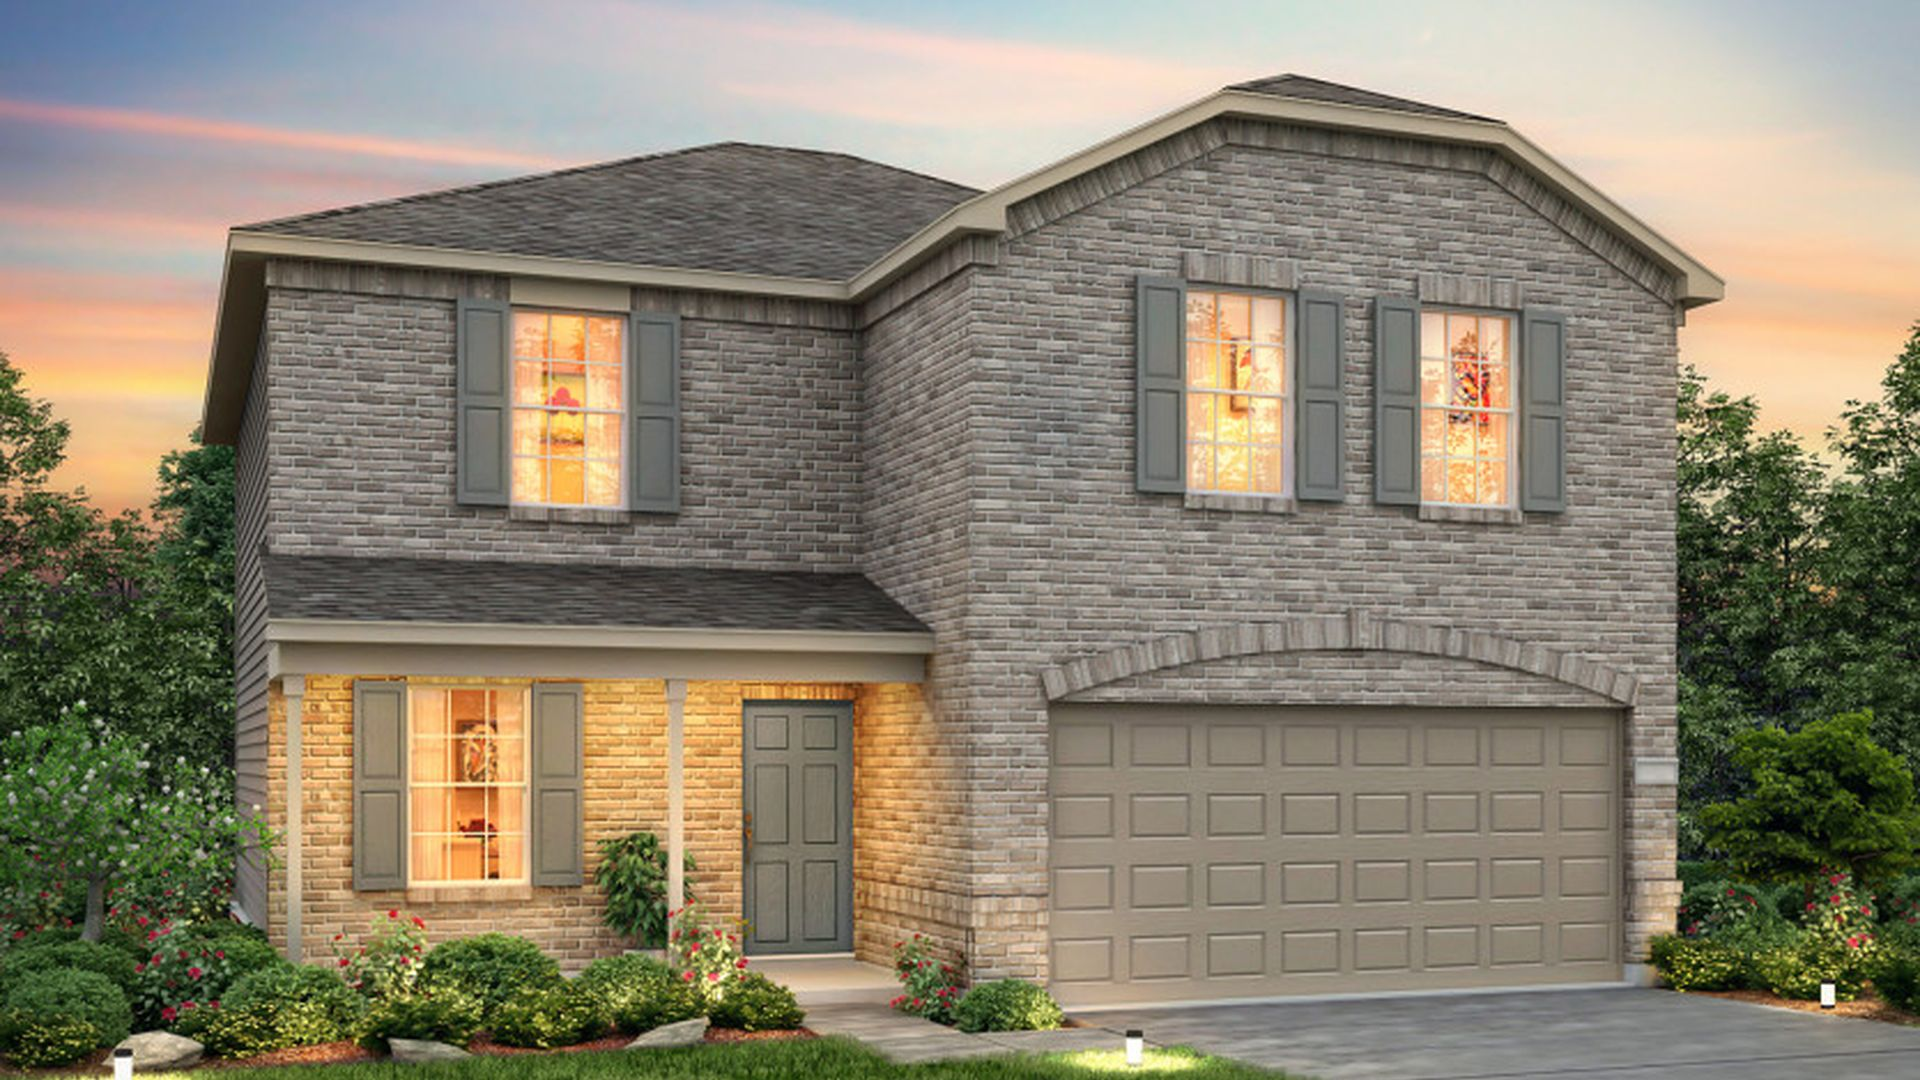 Houston TX Single Family Homes For Sale - 9,280 Homes | Zillow